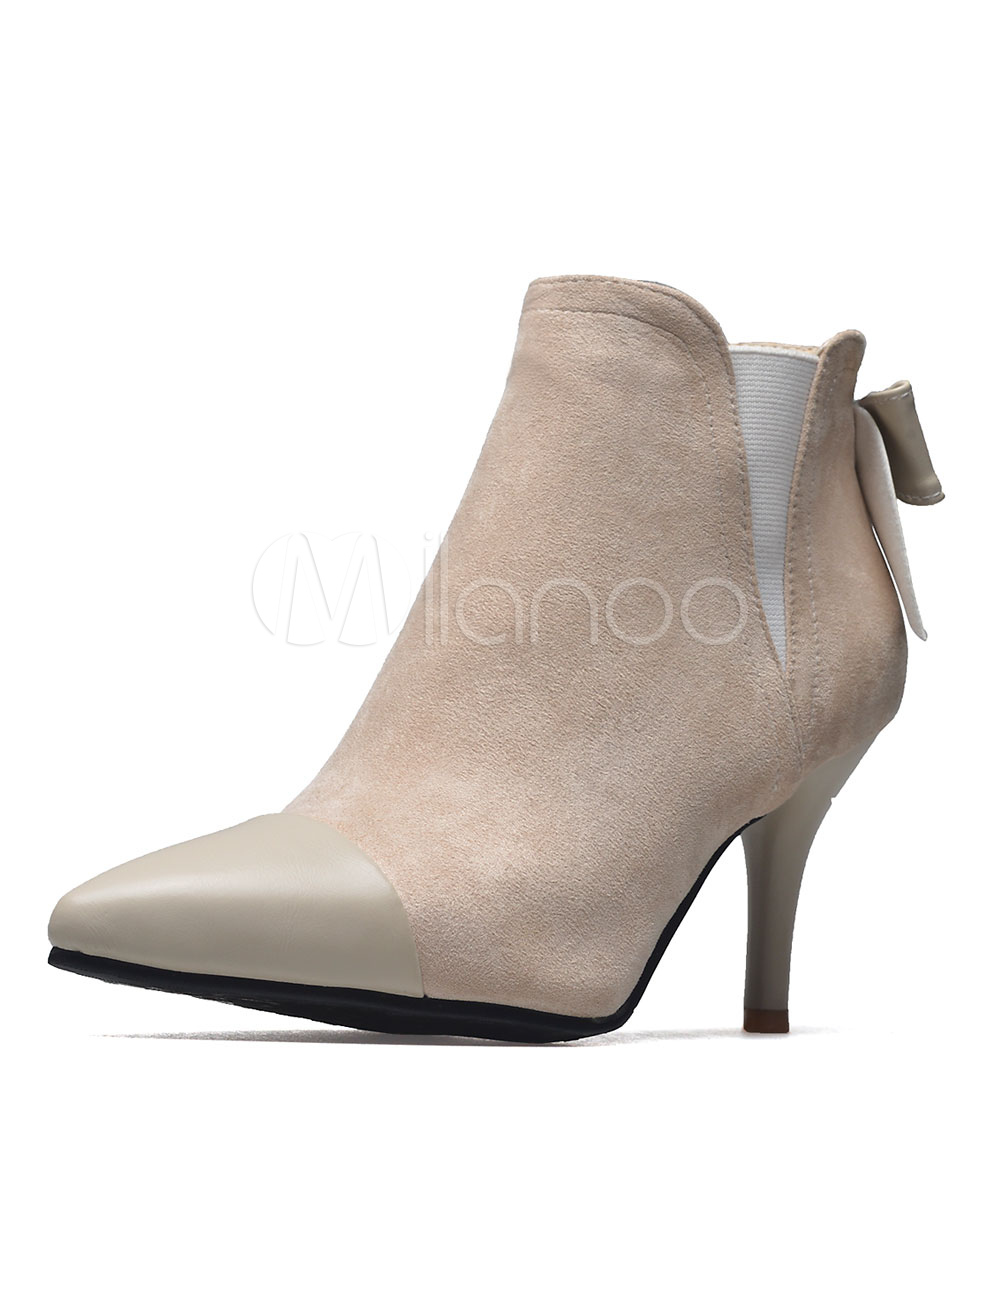 Women's Ankle Boots Pointed Toe Kitten Heel Suede PU Patchwork Bows Slip On Booties